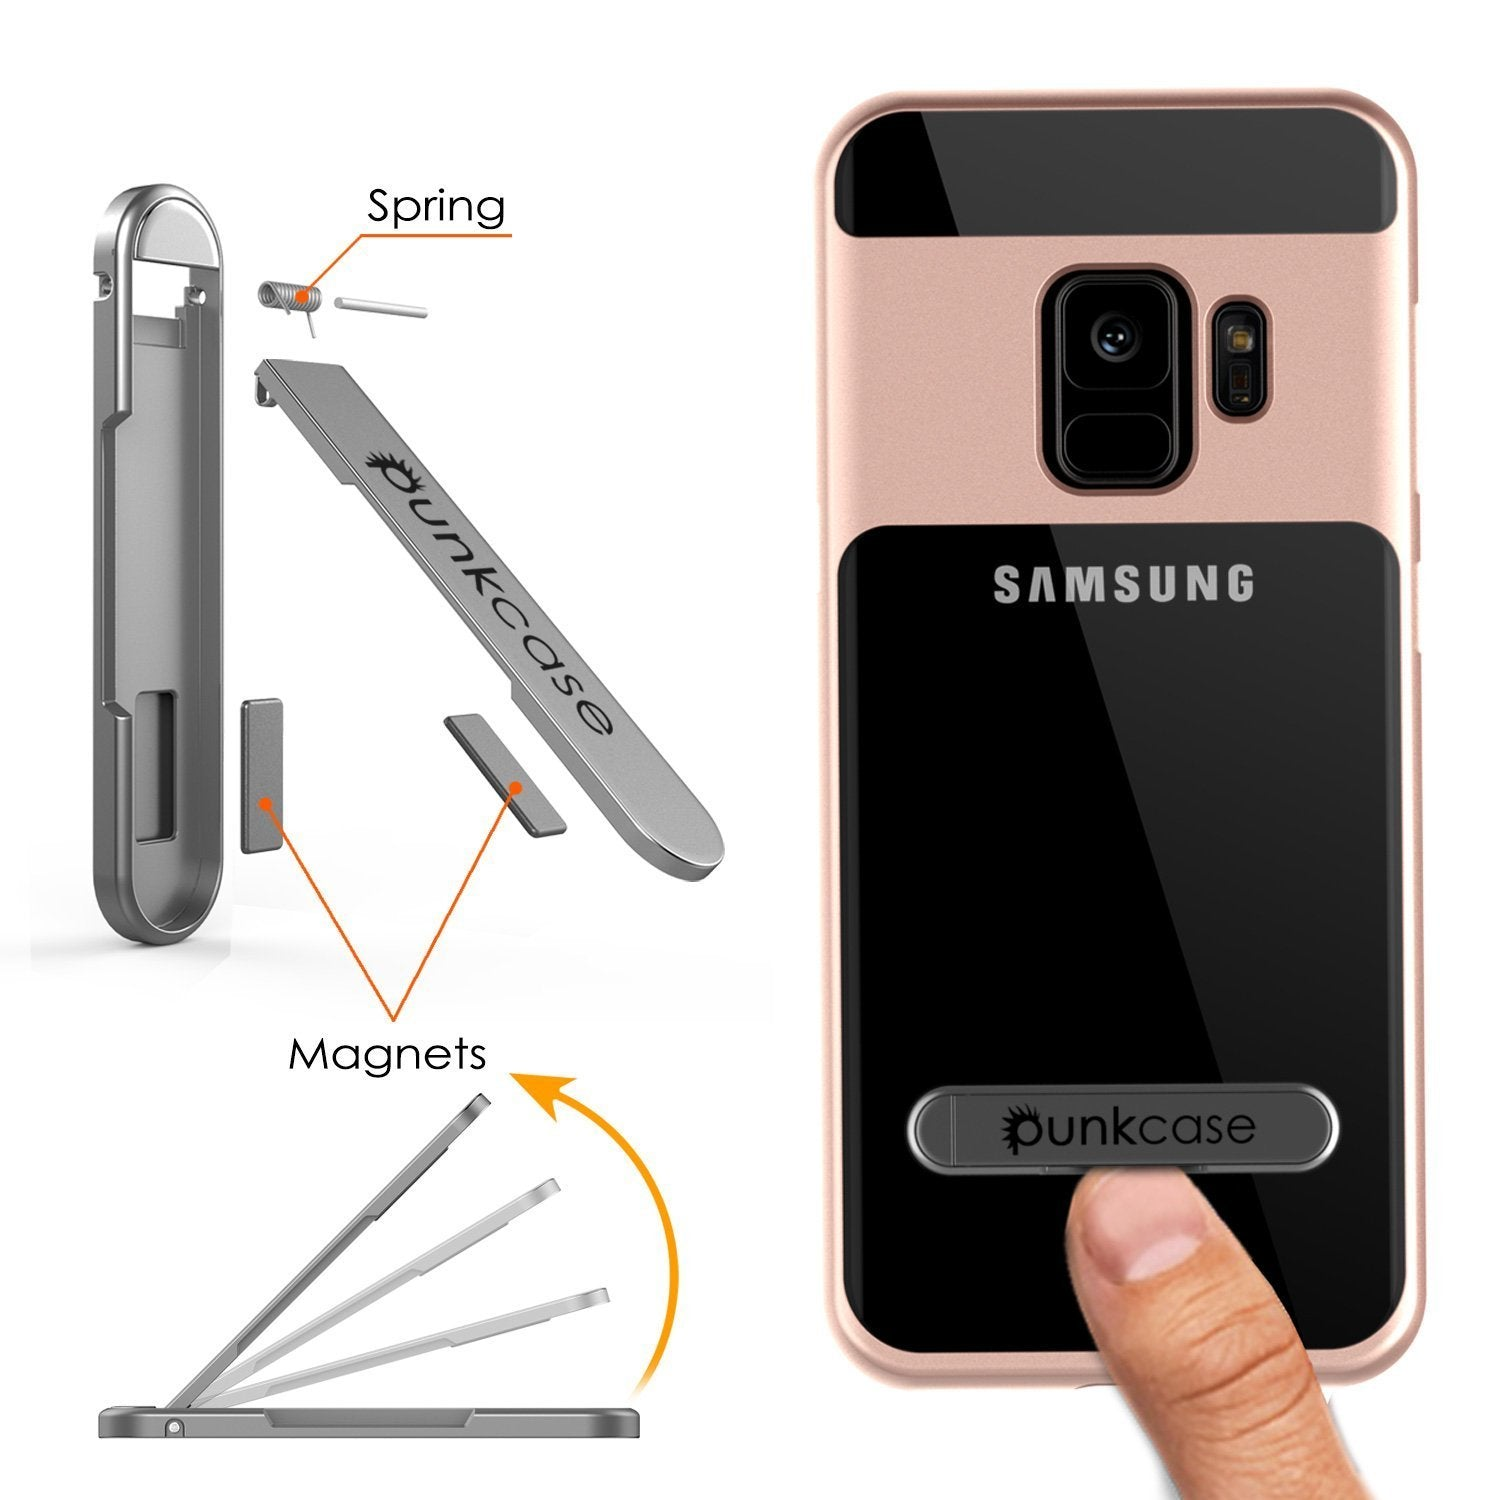 Galaxy S9 Case, PUNKcase [LUCID 3.0 Series] [Slim Fit] [Clear Back] Armor Cover w/ Integrated Kickstand, Anti-Shock System & PUNKSHIELD Screen Protector for Samsung Galaxy S9 [Rose Gold]